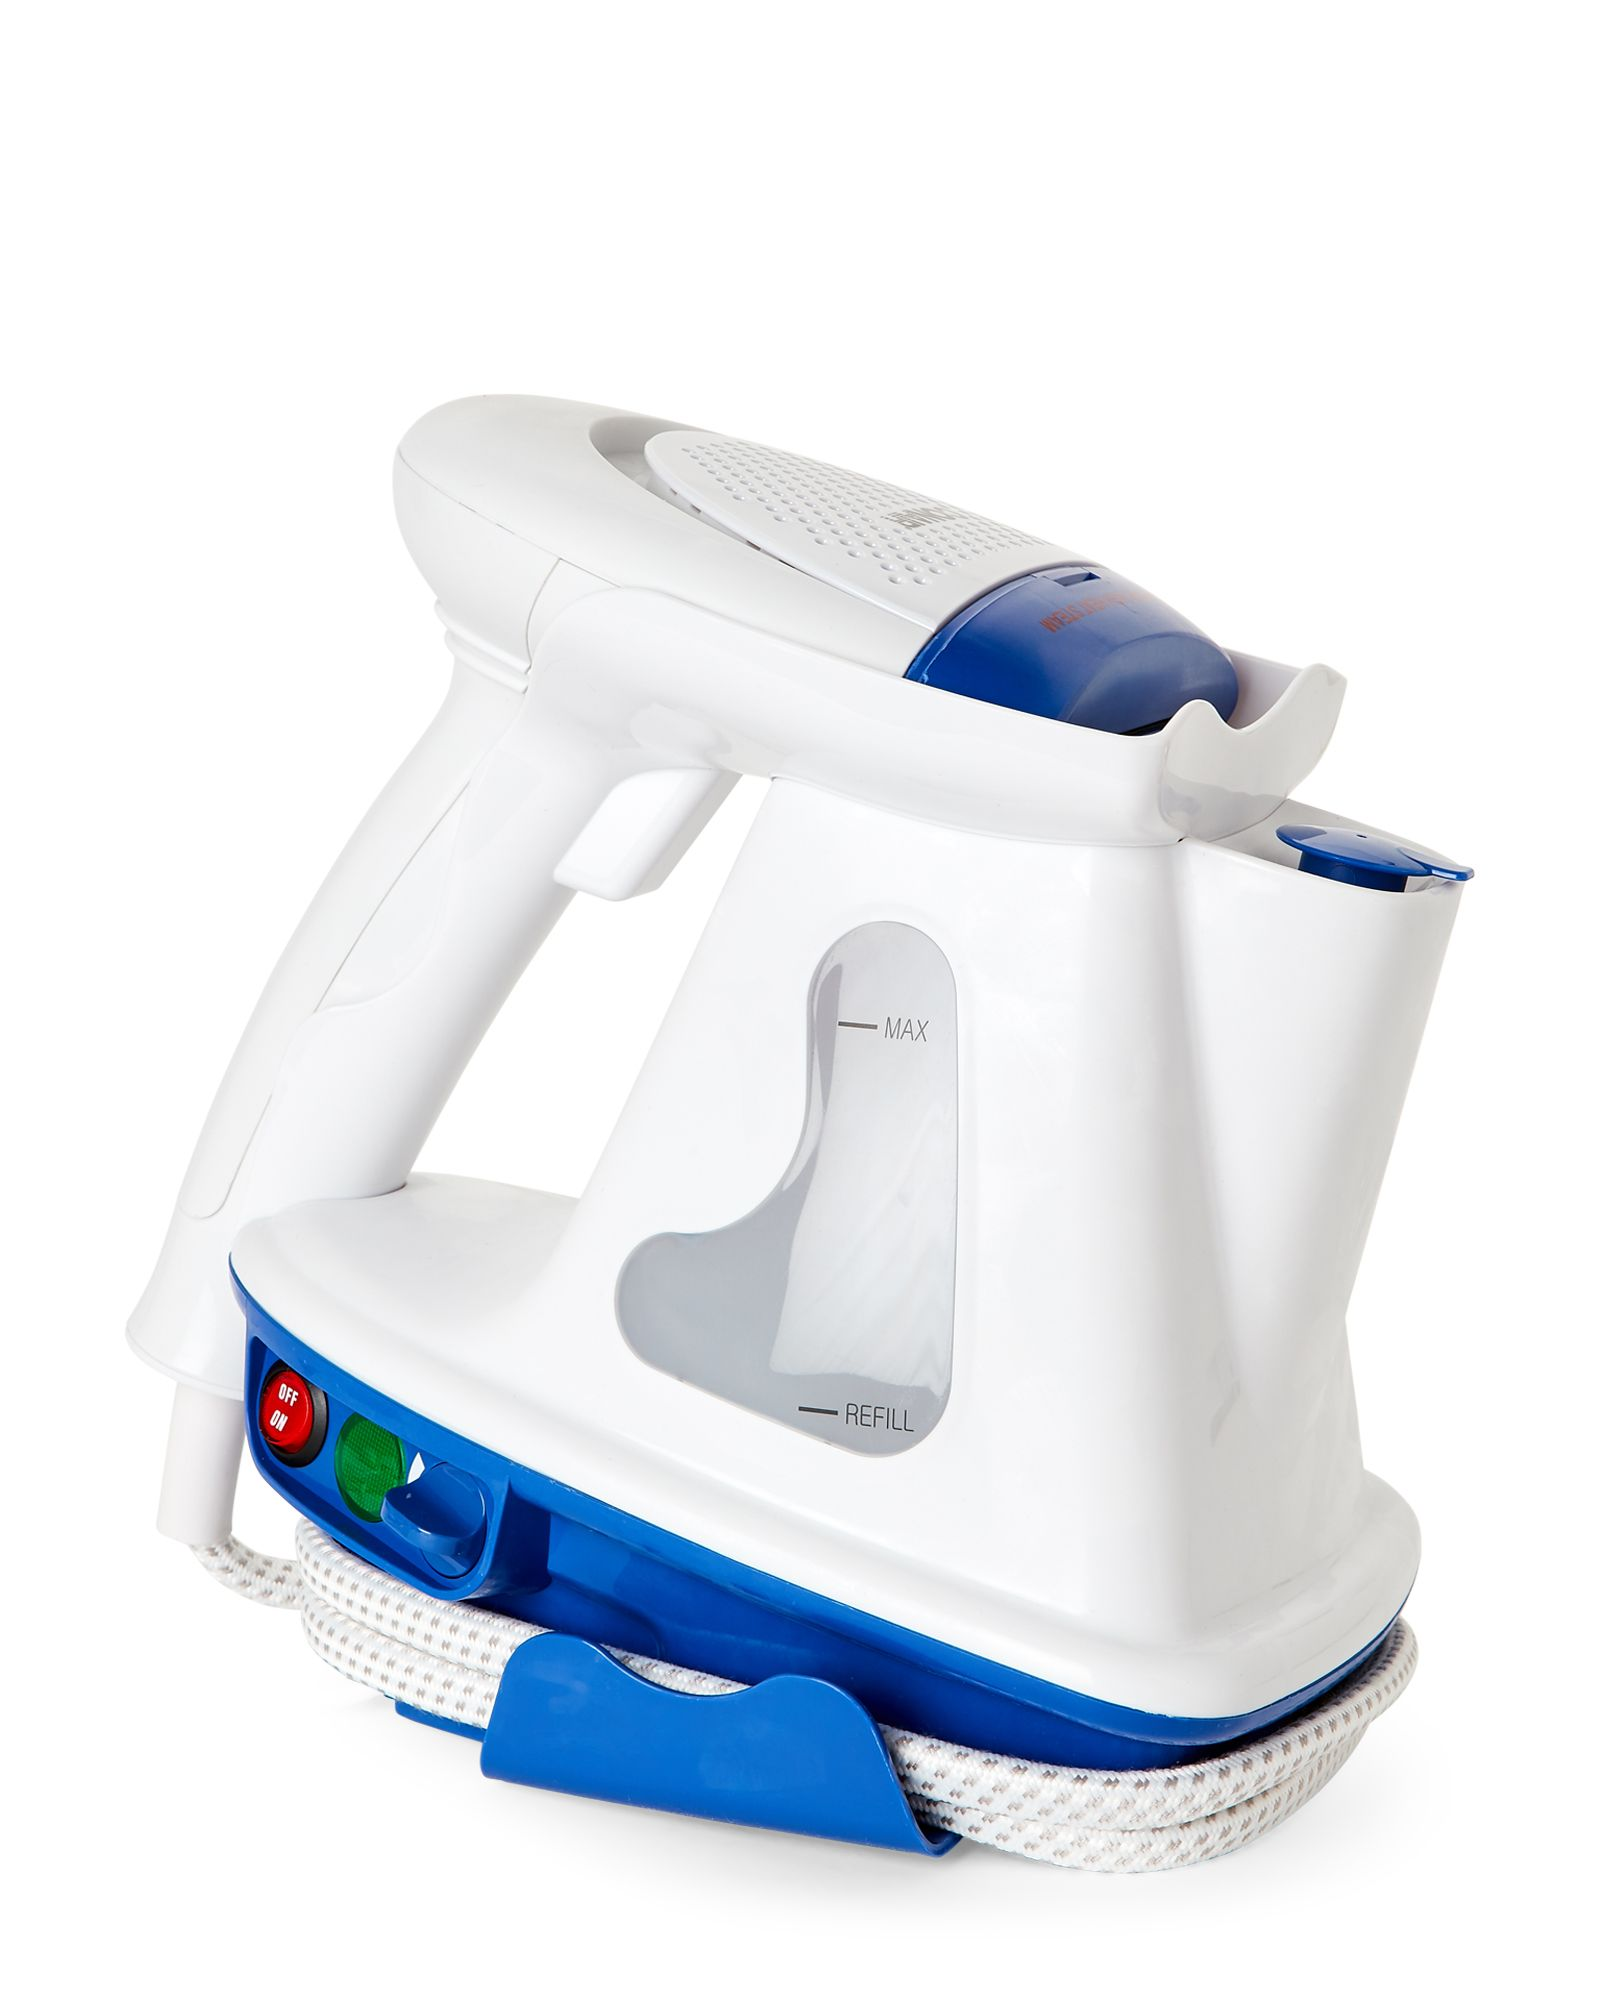 Stupendous Conair Extreme Steam Portable Tabletop Fabric Steamer Home Interior And Landscaping Analalmasignezvosmurscom